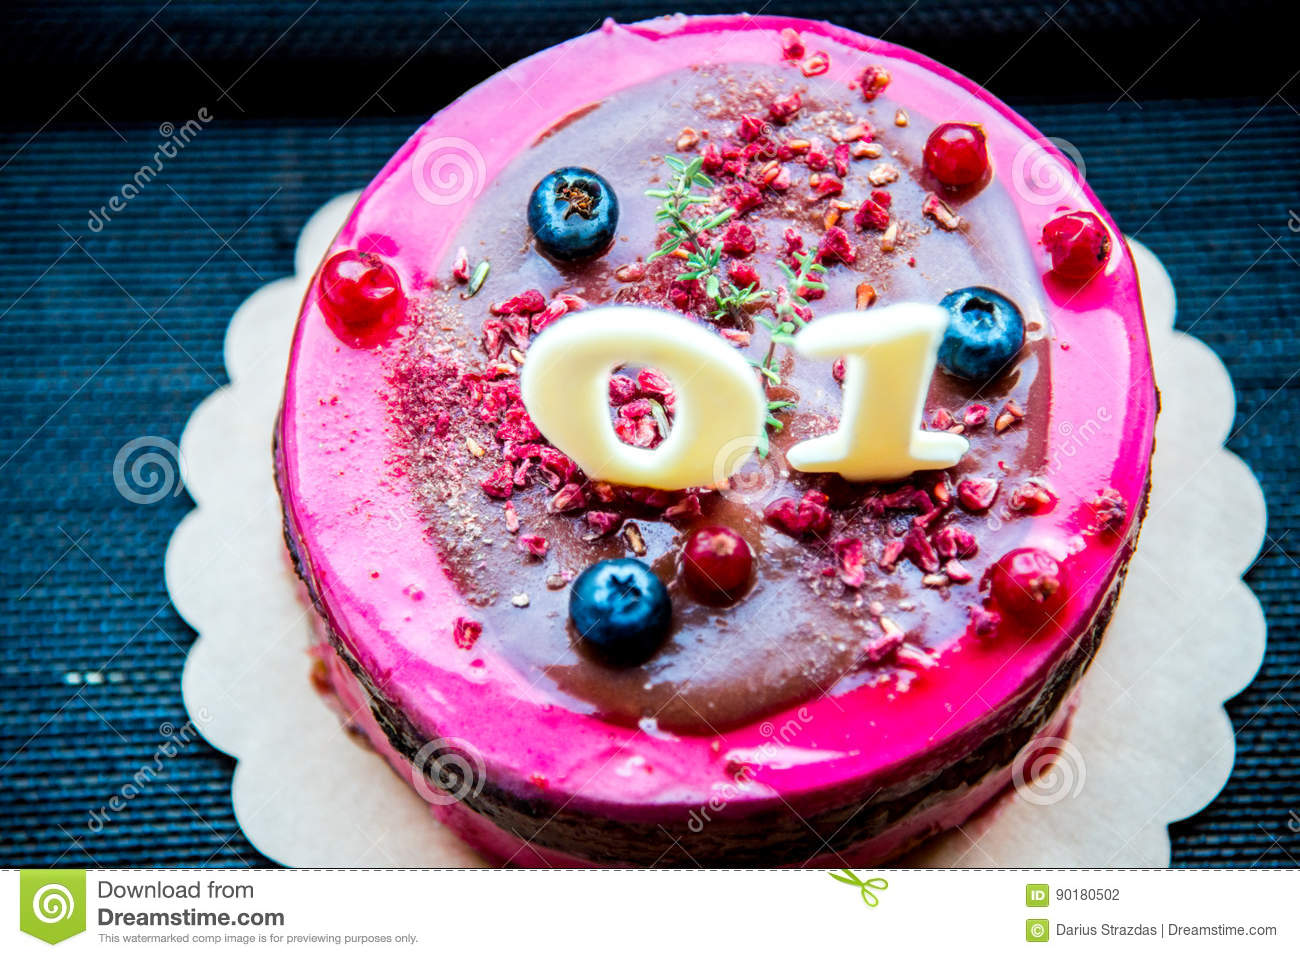 Cake For Child Birthday Stock Photo Image Of Blueberry 90180502